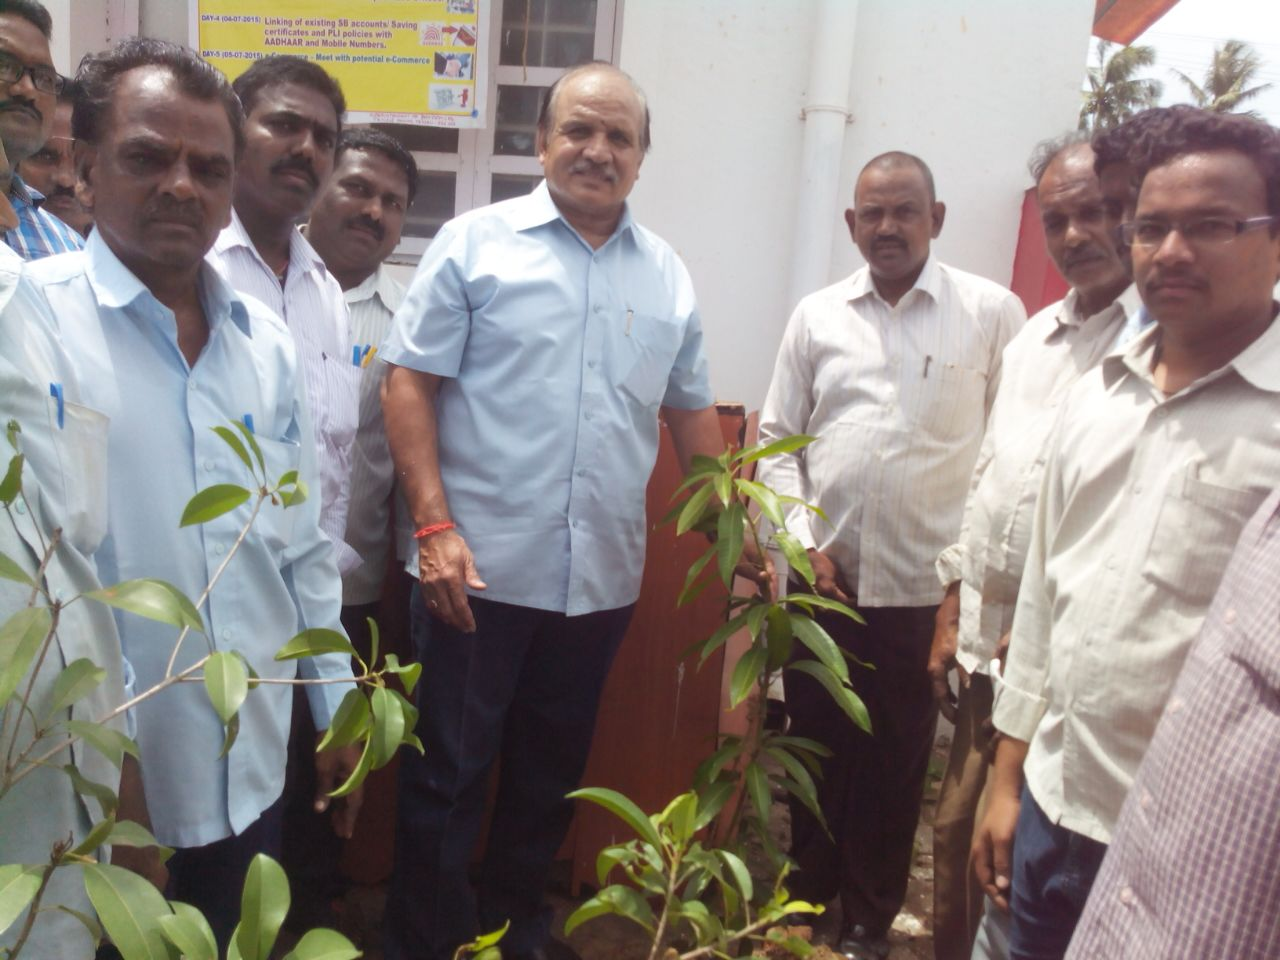 CPMG visit of Repalle MDG dated 29-07-2015